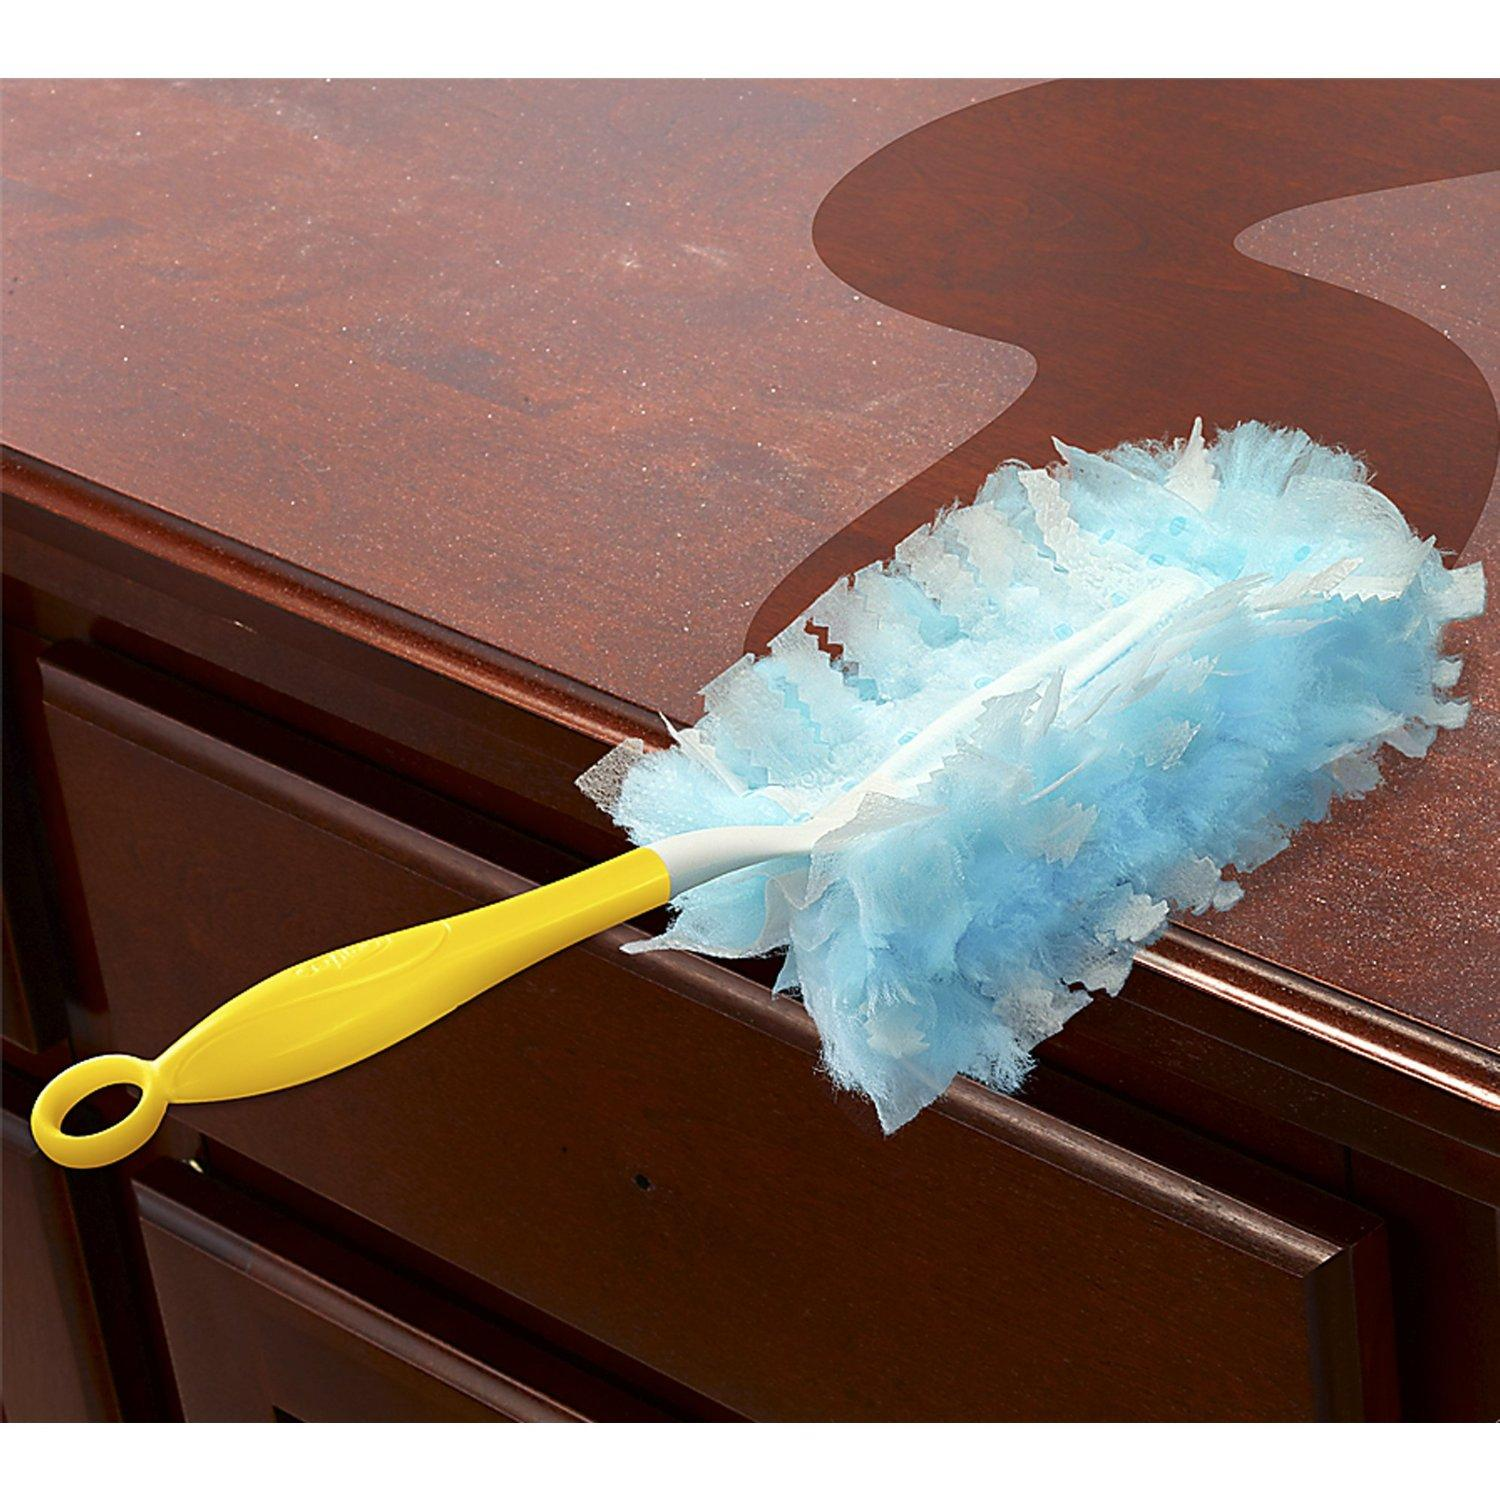 $8.52 #1 Best Seller! Swiffer Disposable Cleaning Dusters Refills, Unscented, 16-Count